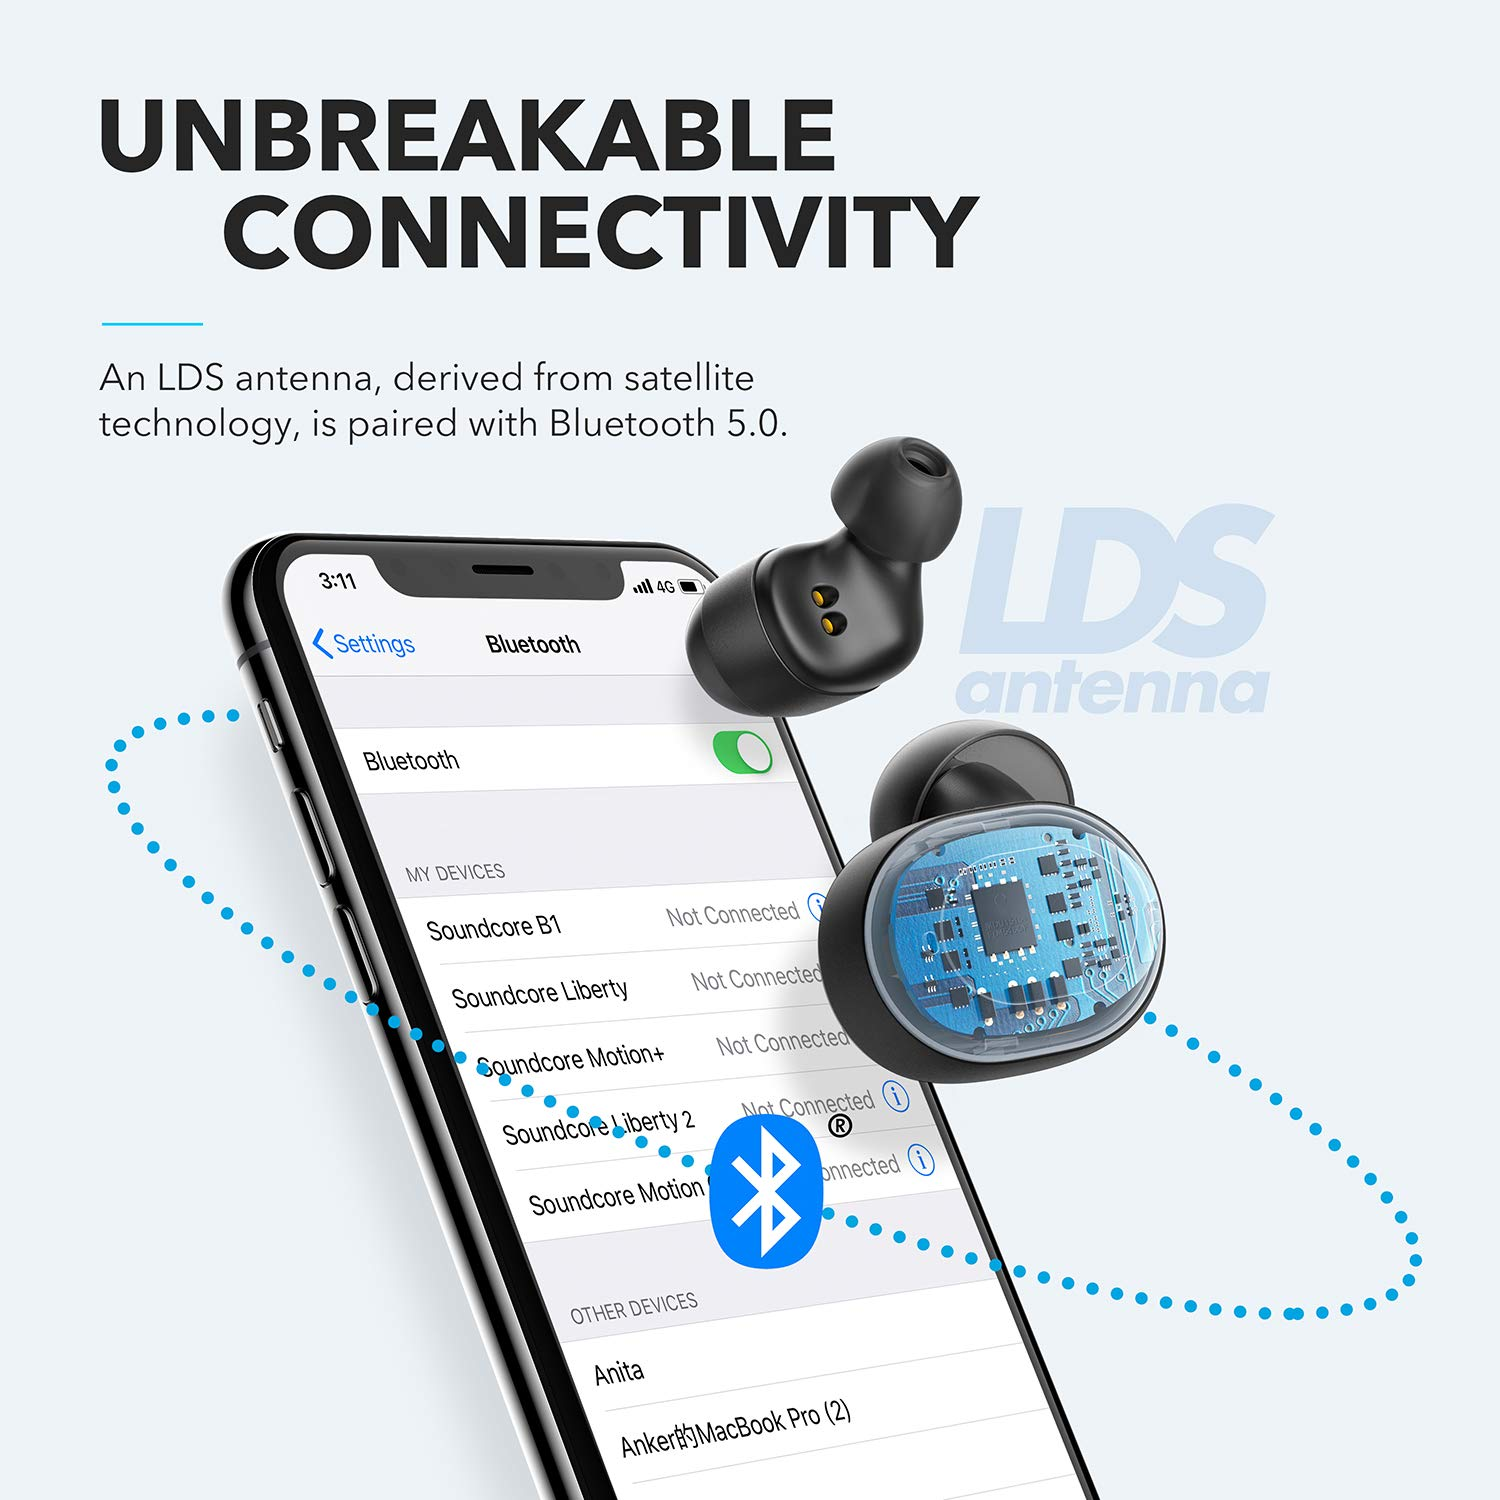 Anker Soundcore Liberty Neo, Bluetooth Earbuds, Premium Sound with Pumping Bass, Secure Fit, Bluetooth 5.0 Headphones, Stereo Calls, Noise Canceling, Easy Pairing, Sweatproof for Sports, Work Out, Gym by Soundcore (Image #7)